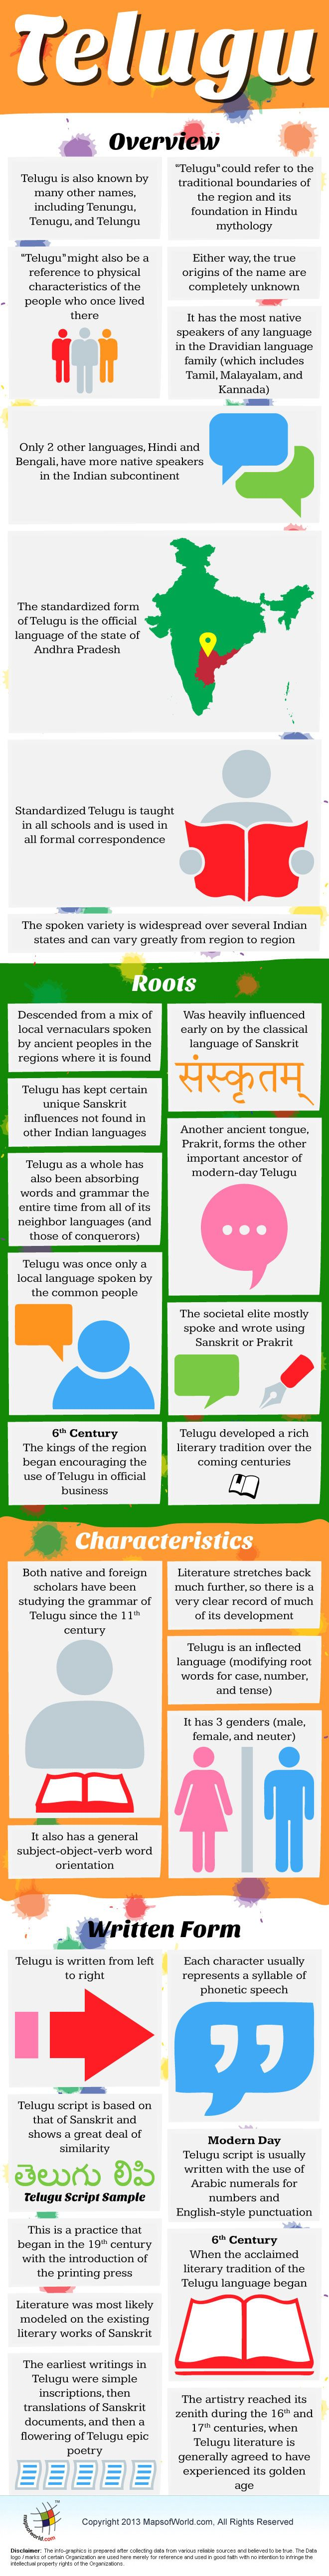 Infographic of Telugu Language